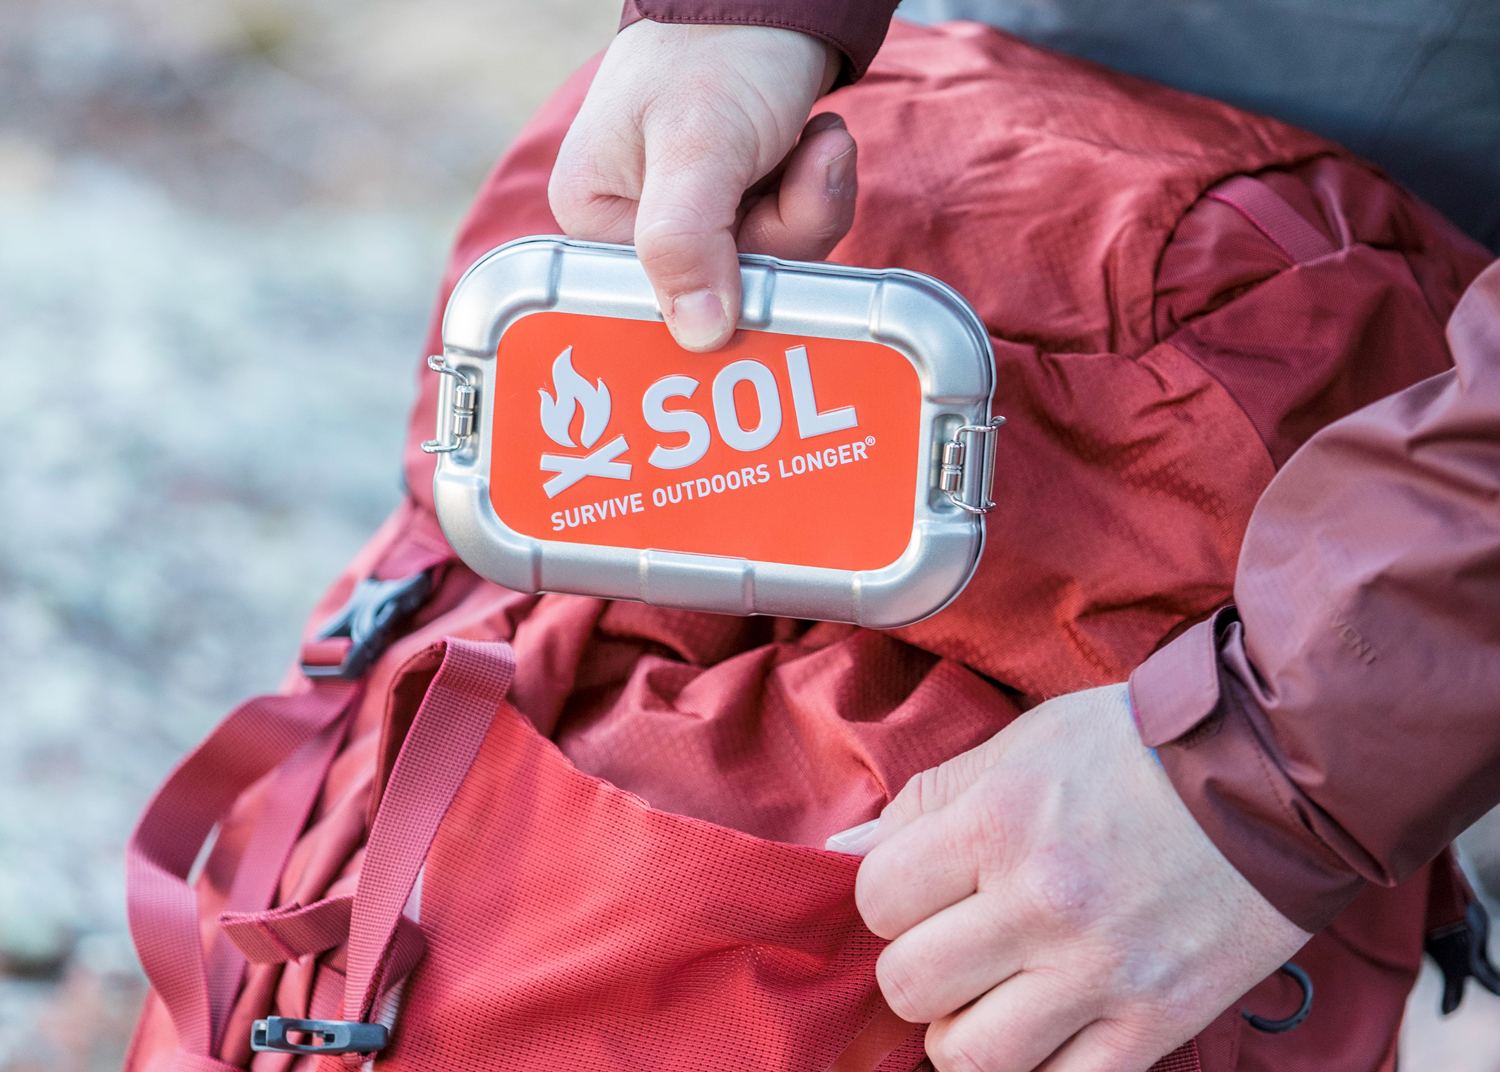 Free Gear Fridays: 'Survive Outdoors Longer' Backcountry Kit Giveaway